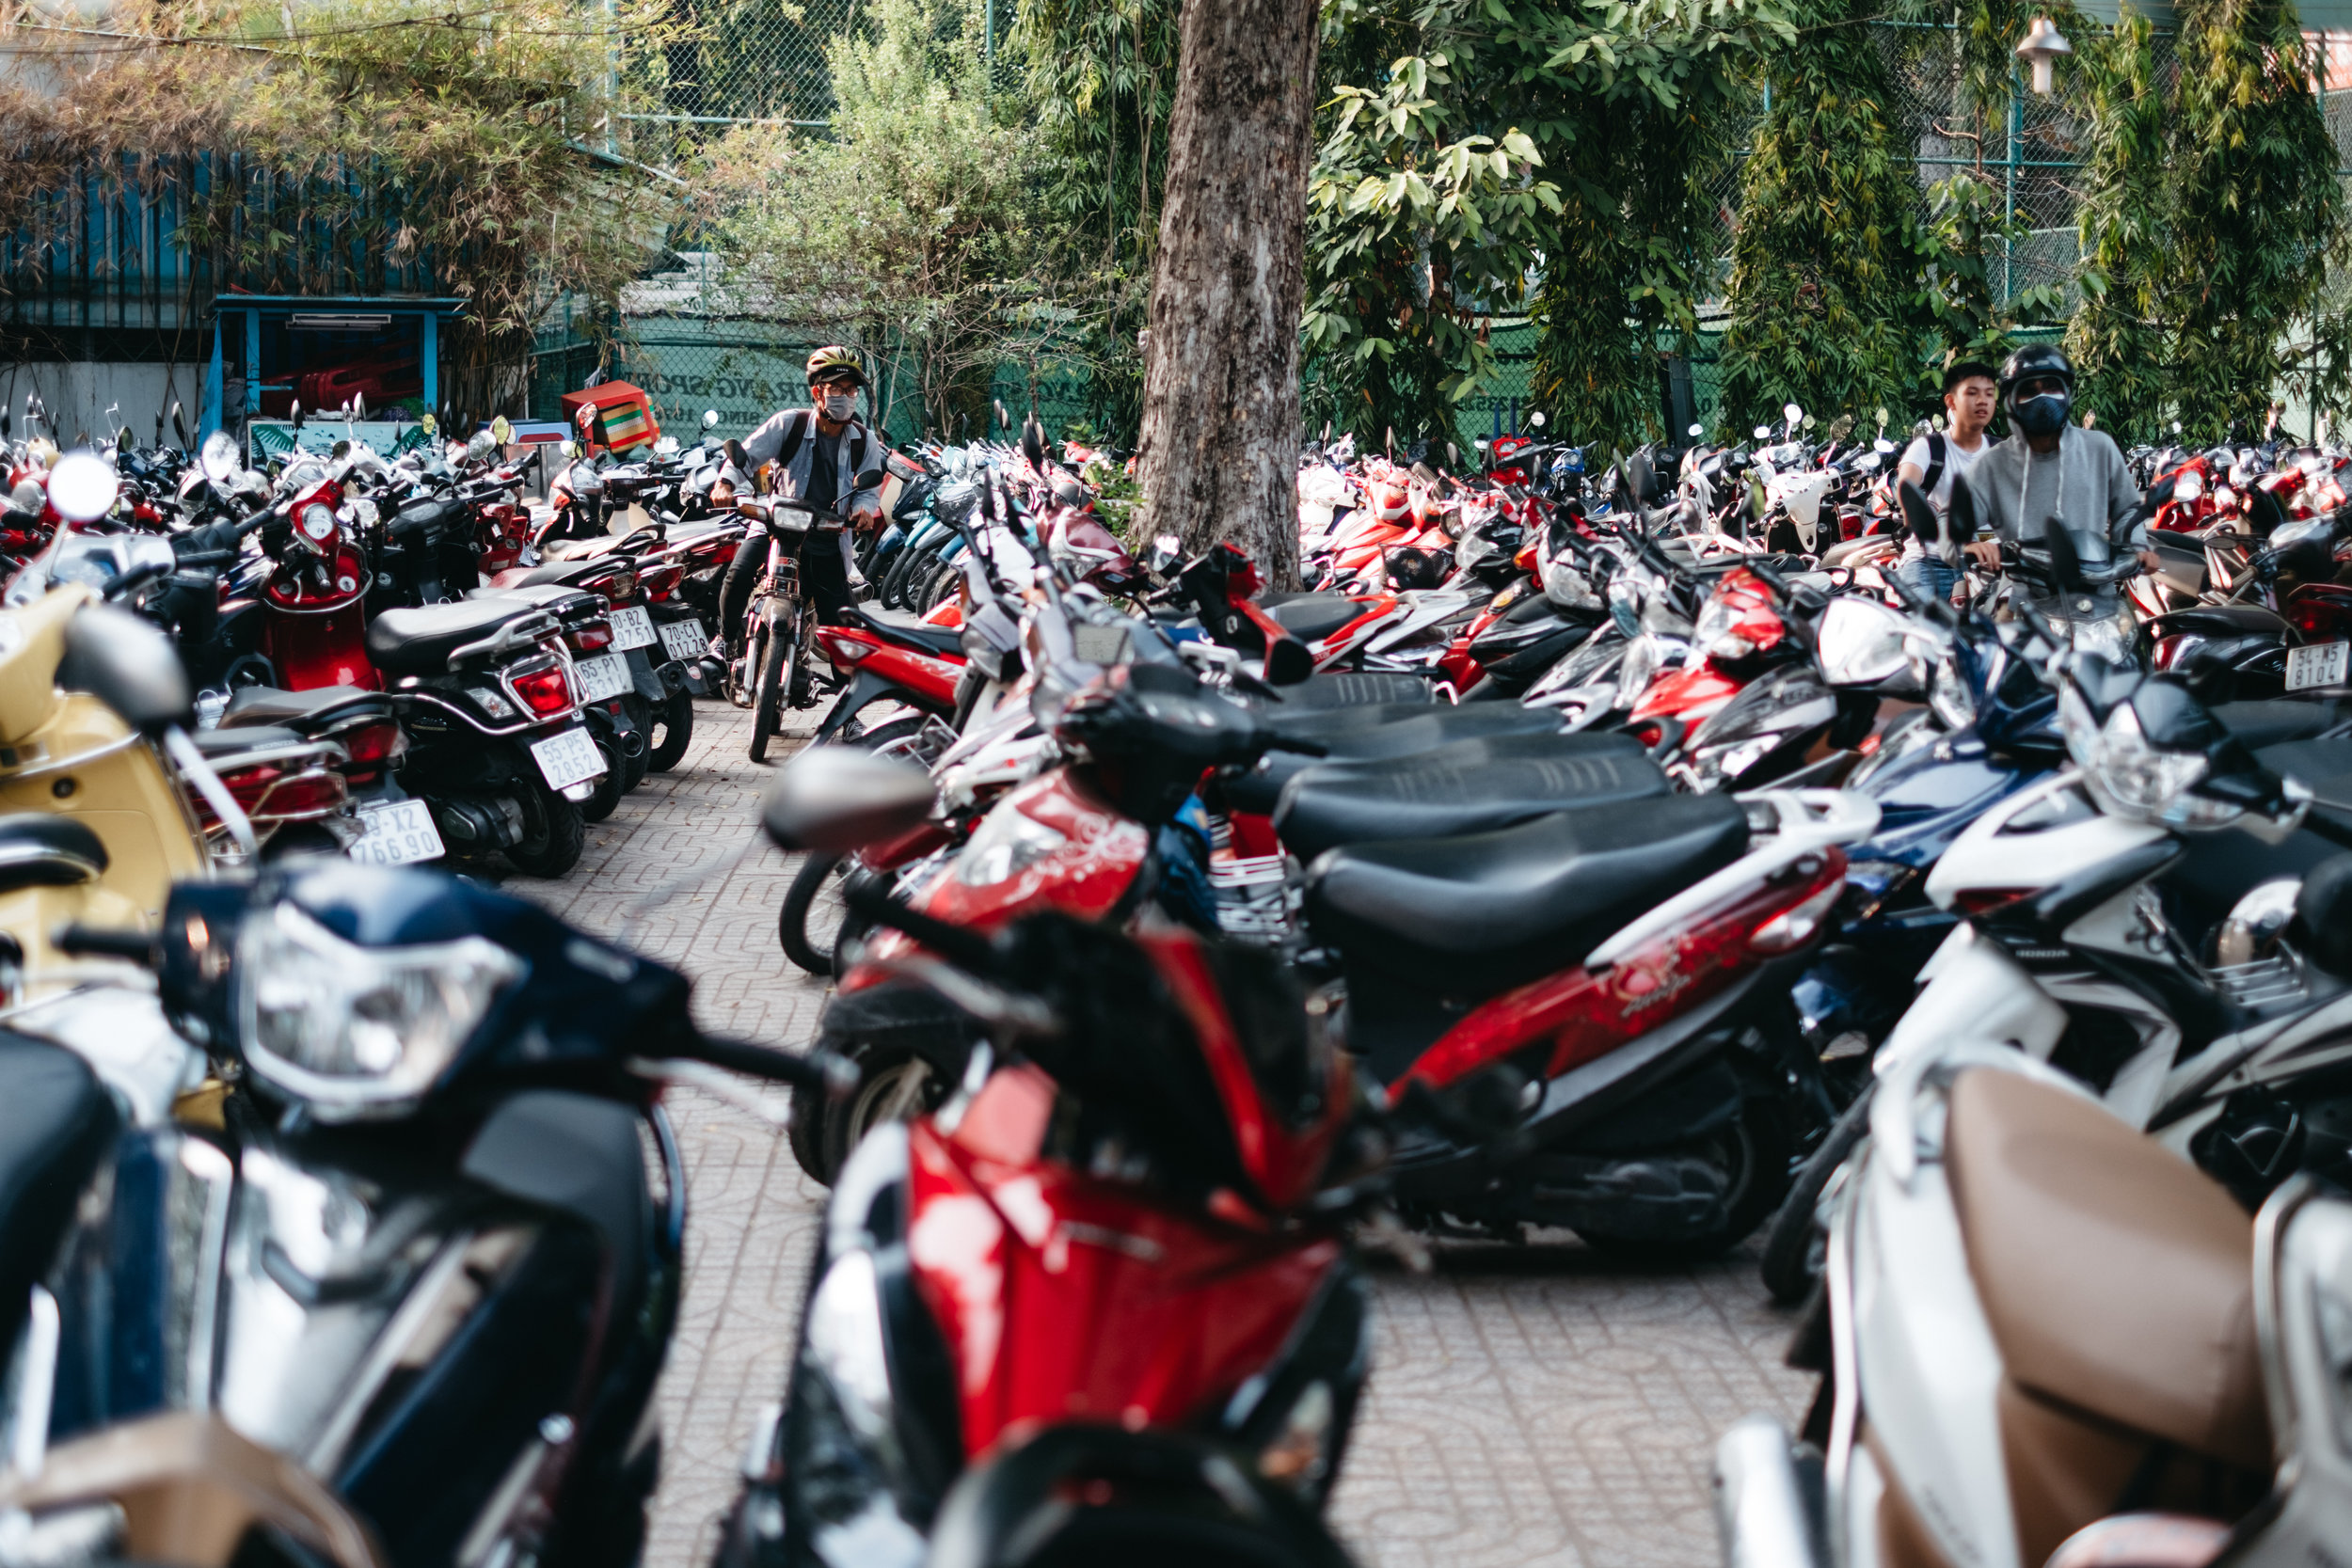 Scooter parking lot in Ho Chi Minh City, Vietnam